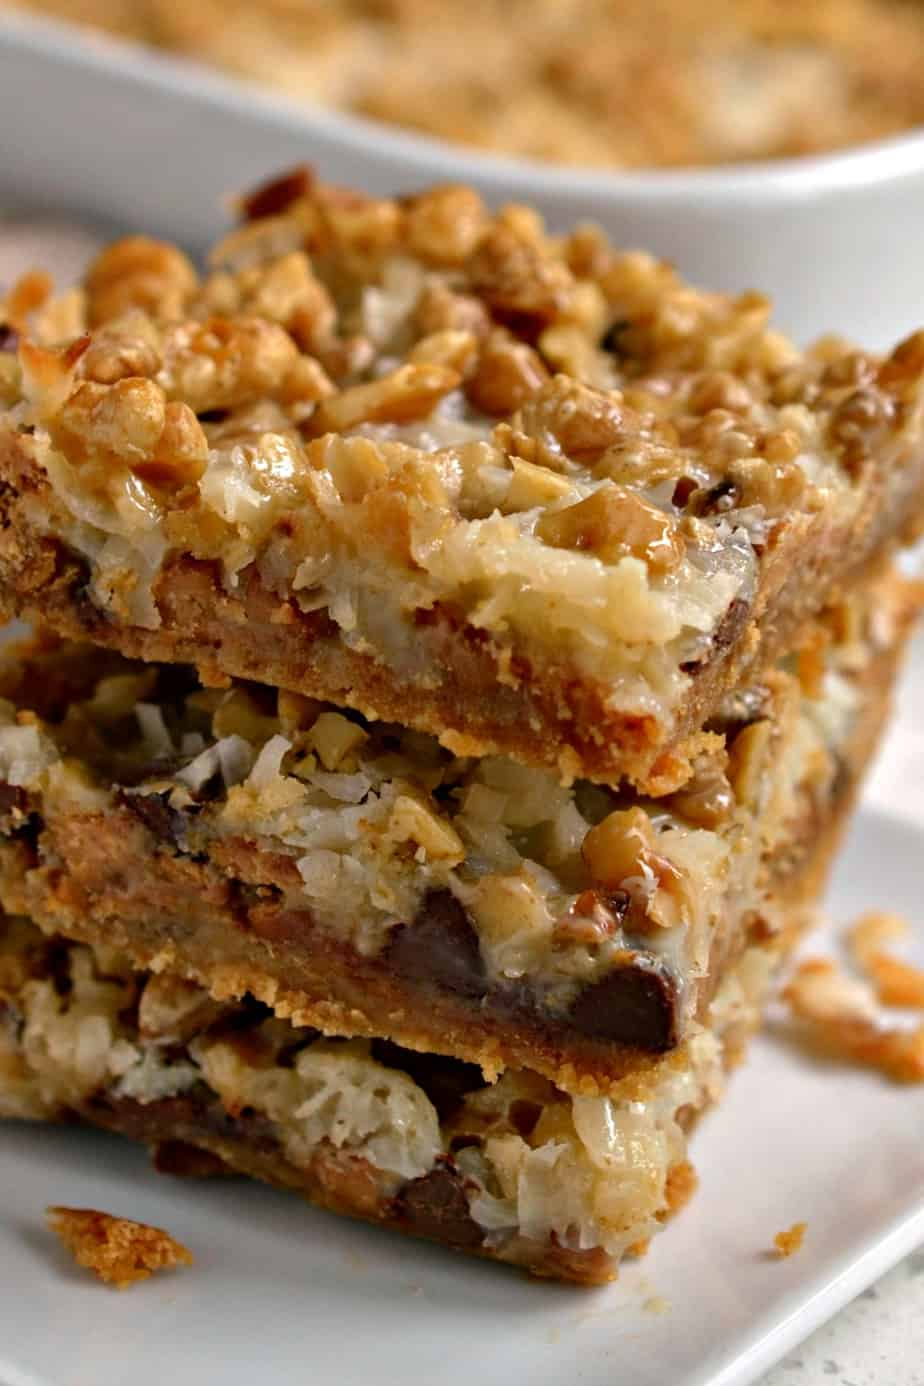 Scrumptious Magic Cookie Bars can be prepped and ready to go into the oven in less than five minutes